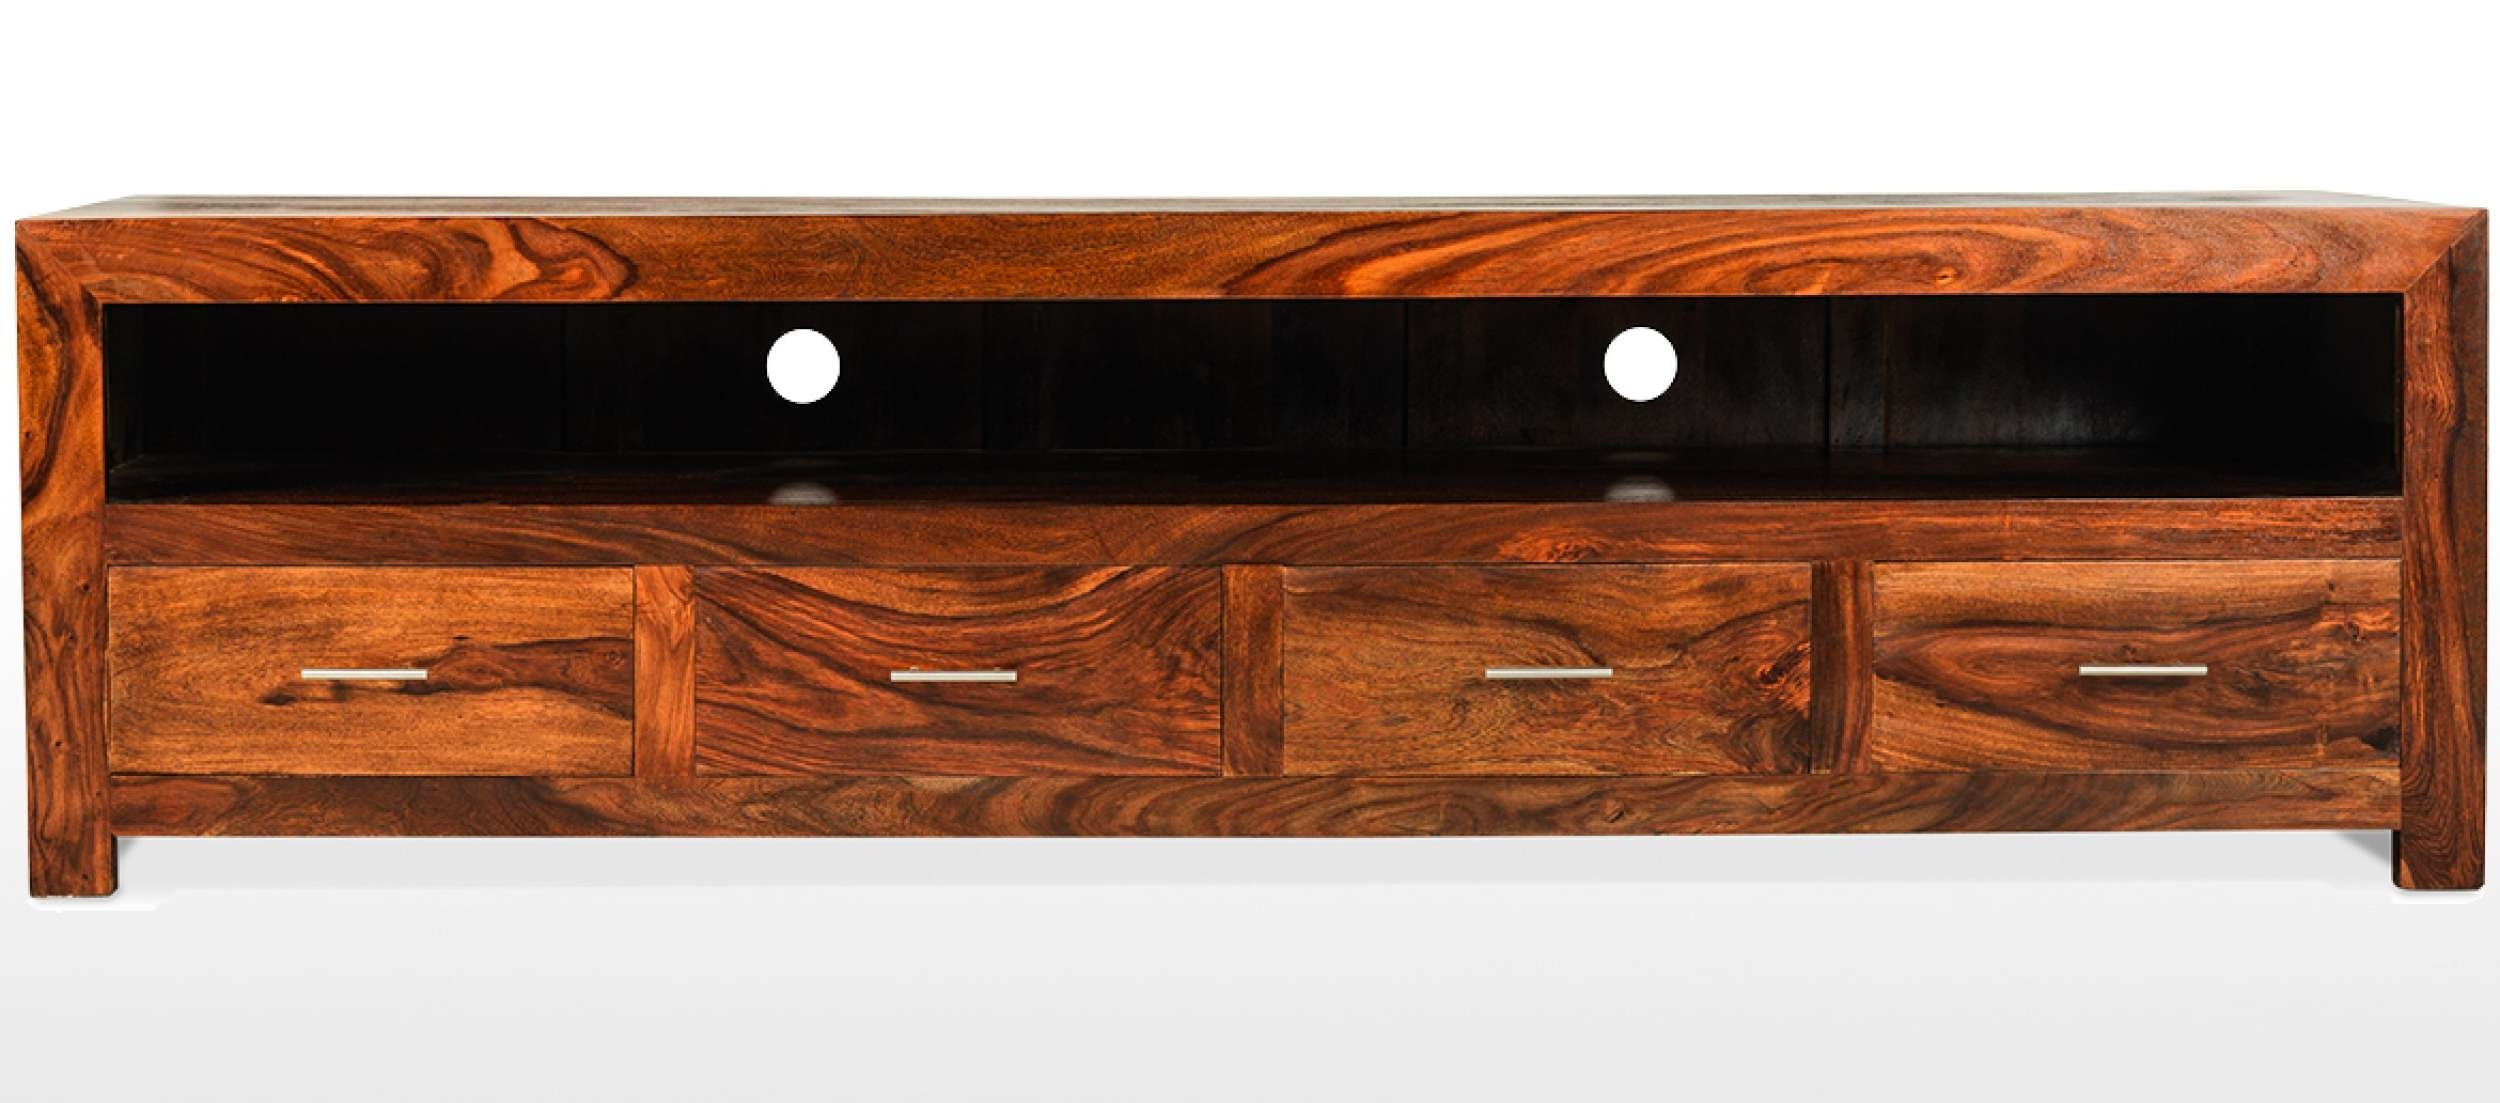 Cube Sheesham Long Plasma Tv Cabinet | Quercus Living Pertaining To Long Tv Stands Furniture (View 2 of 15)